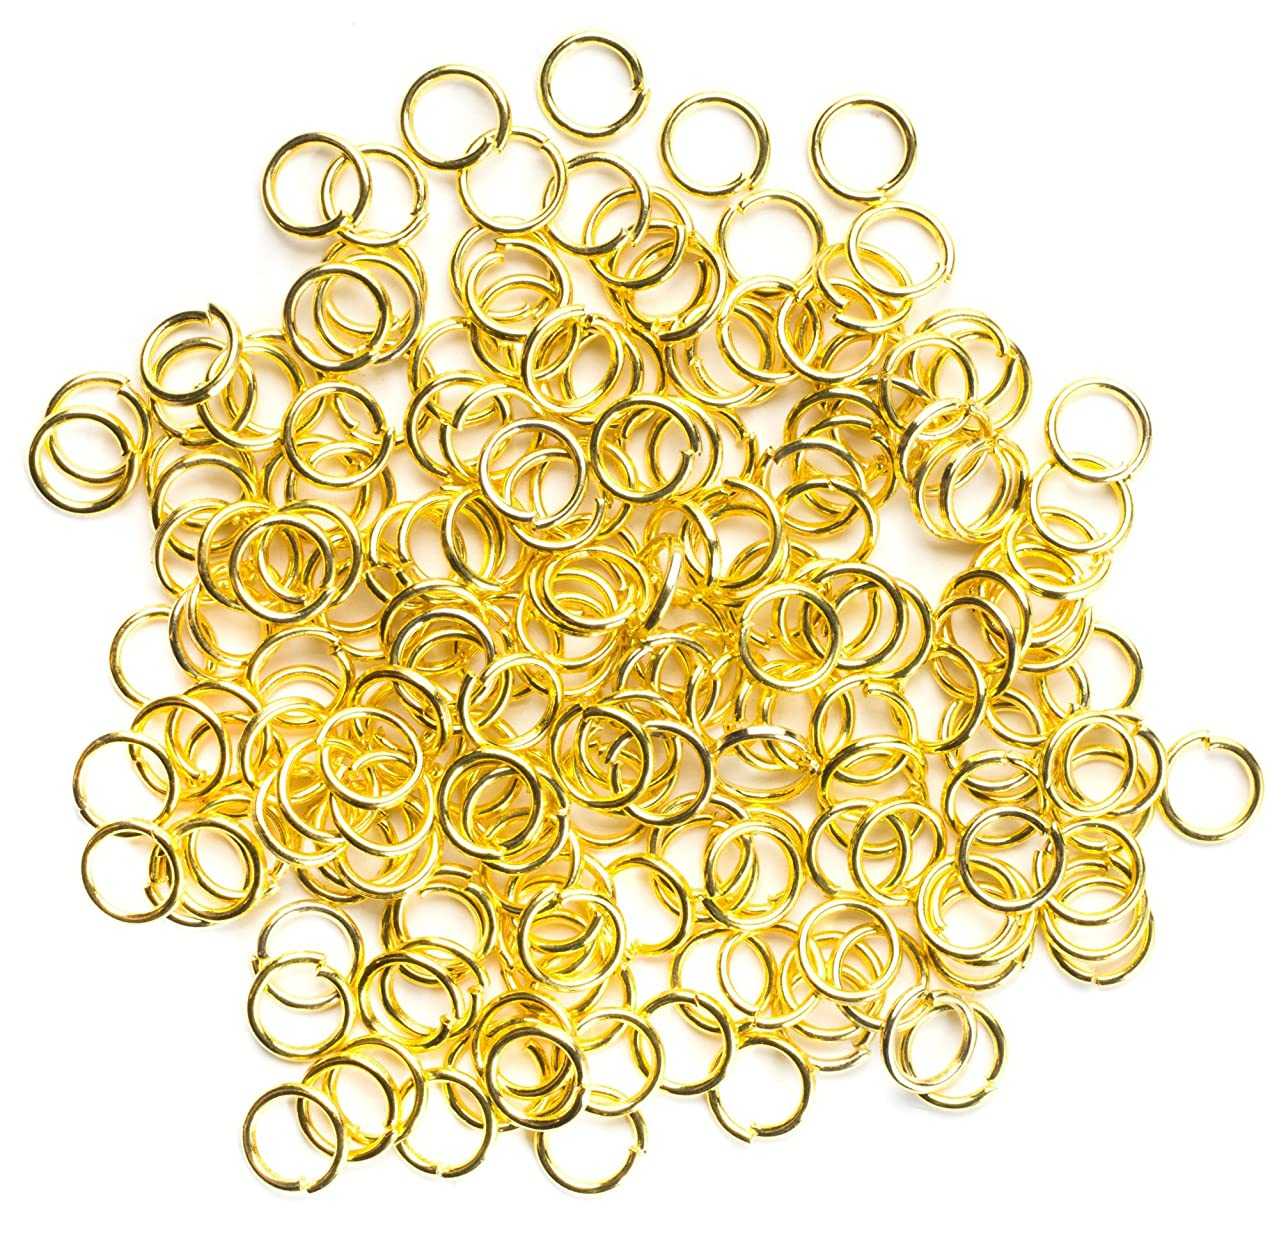 Cousin DIY 200pc 6mm Open Jump Ring- Gold